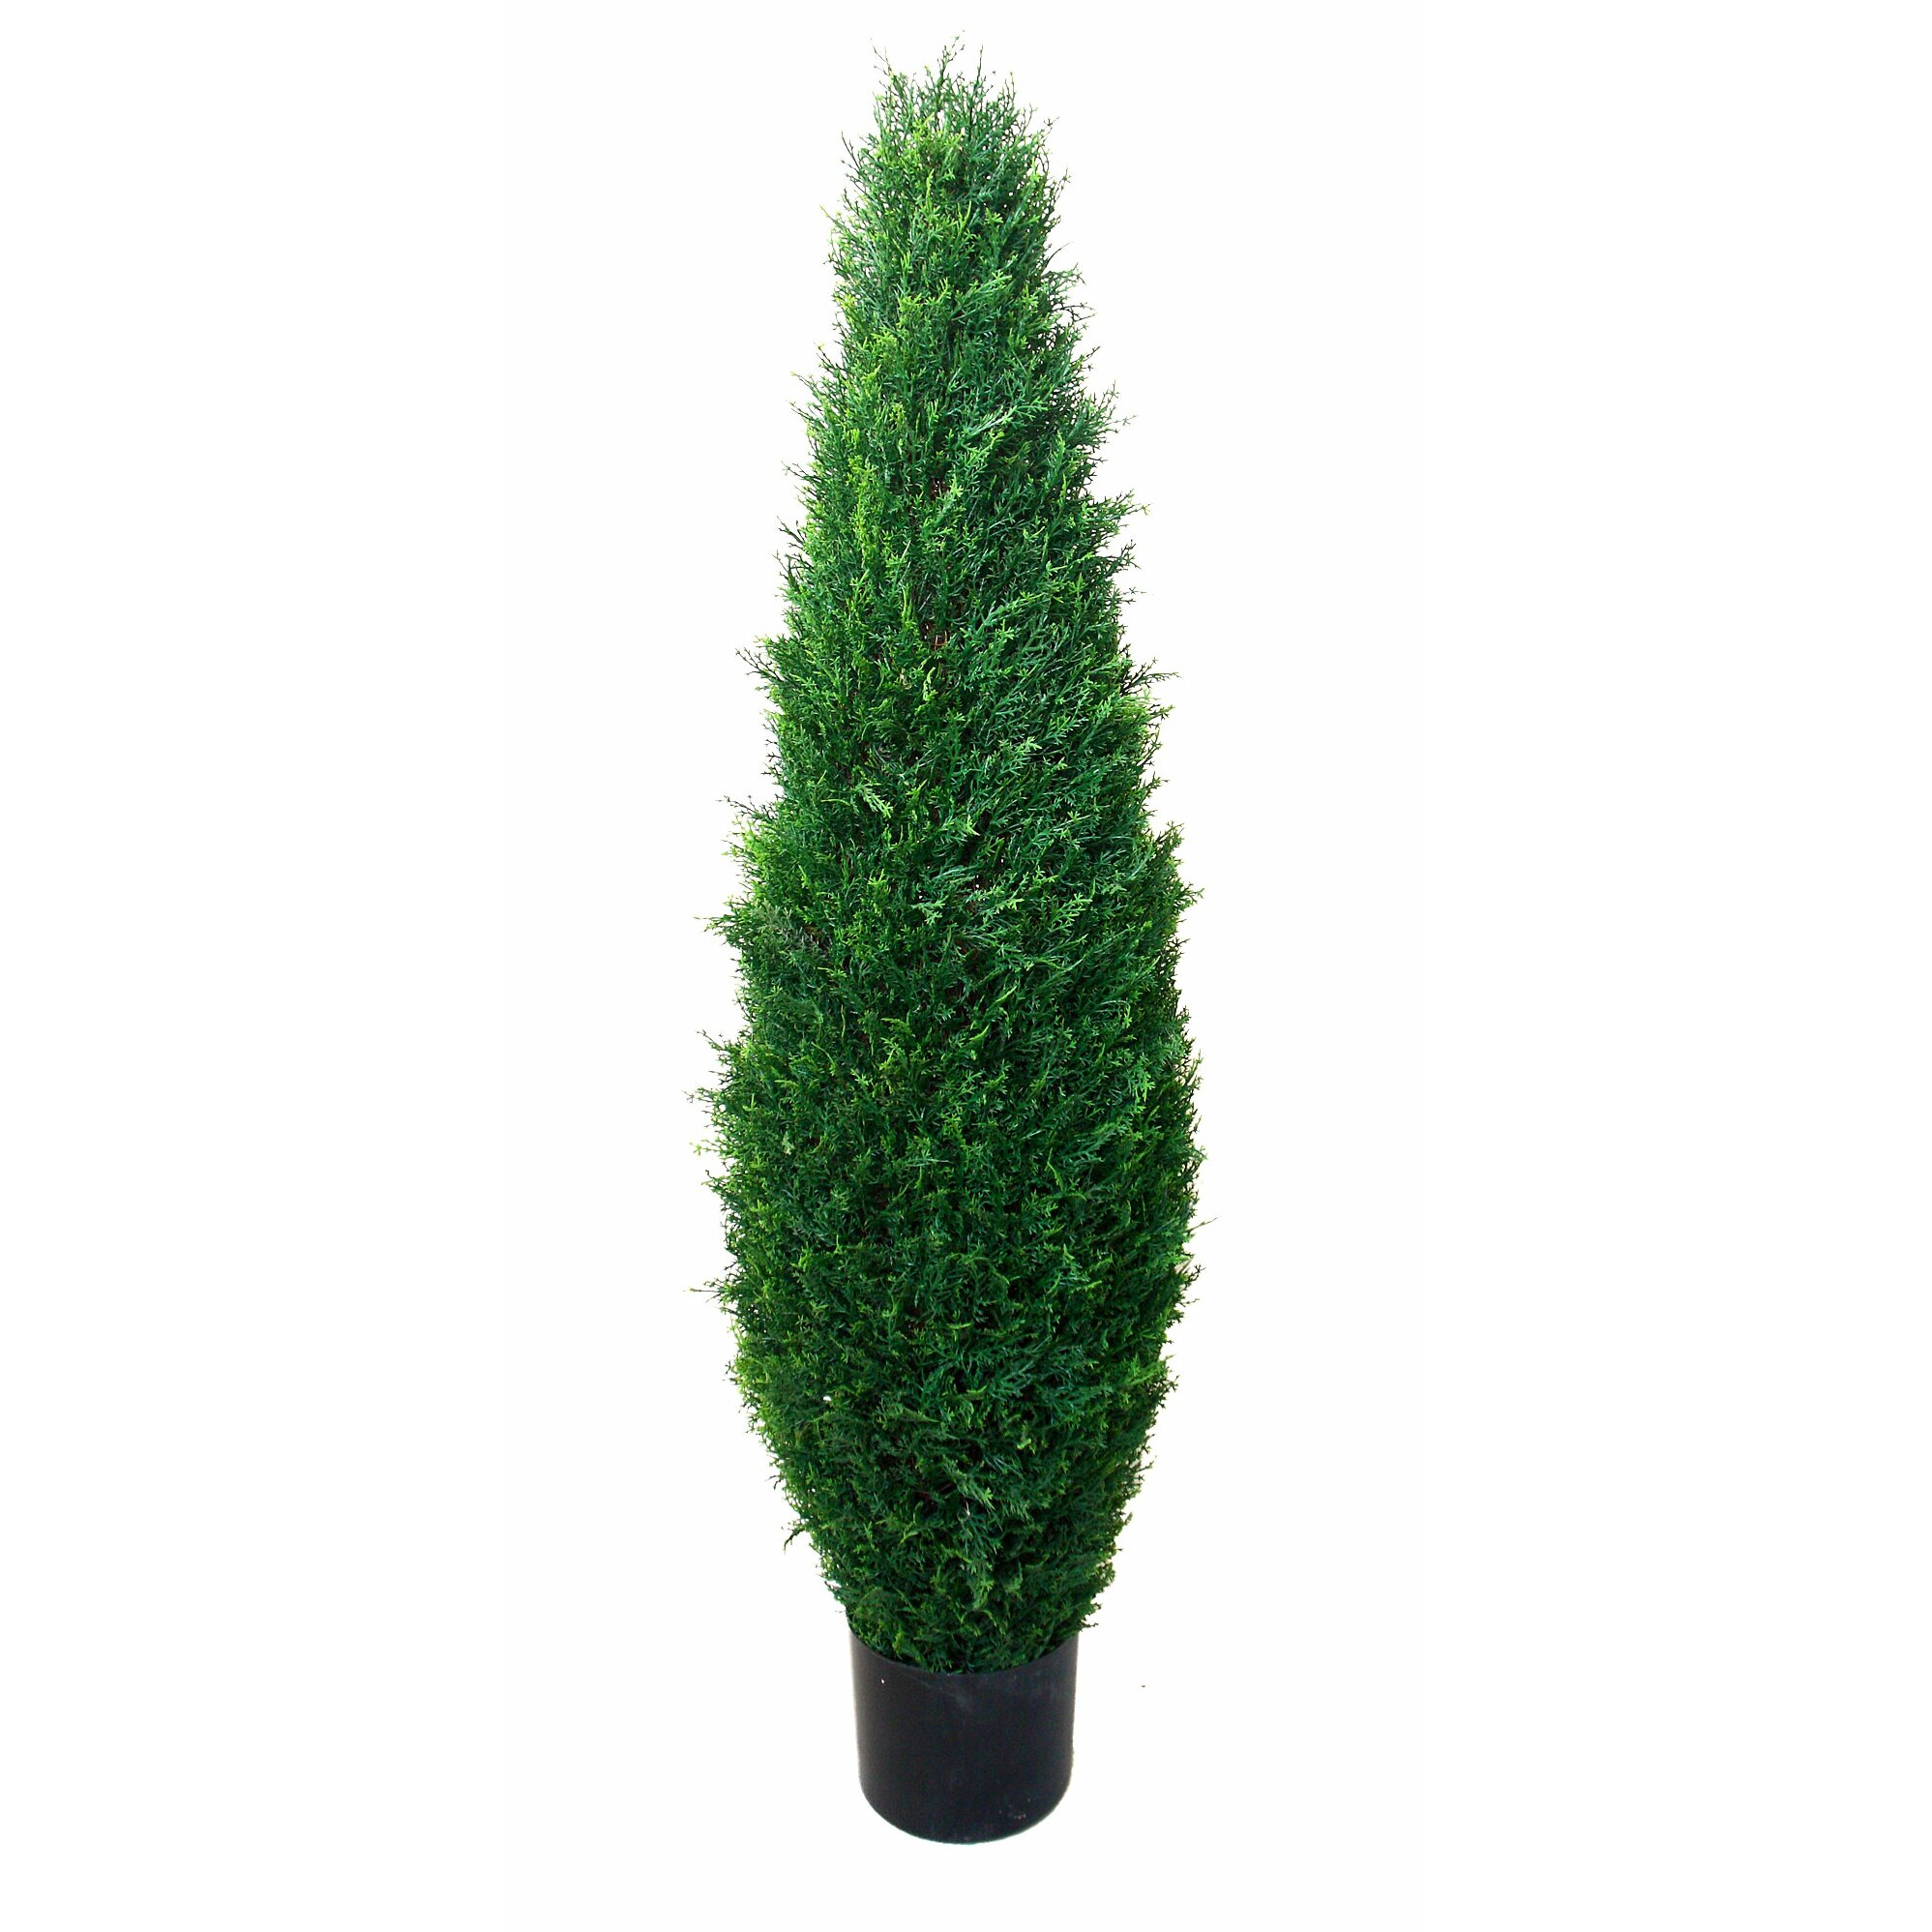 Decorative Indoor Trees Indoor Plants Youll Love Wayfair